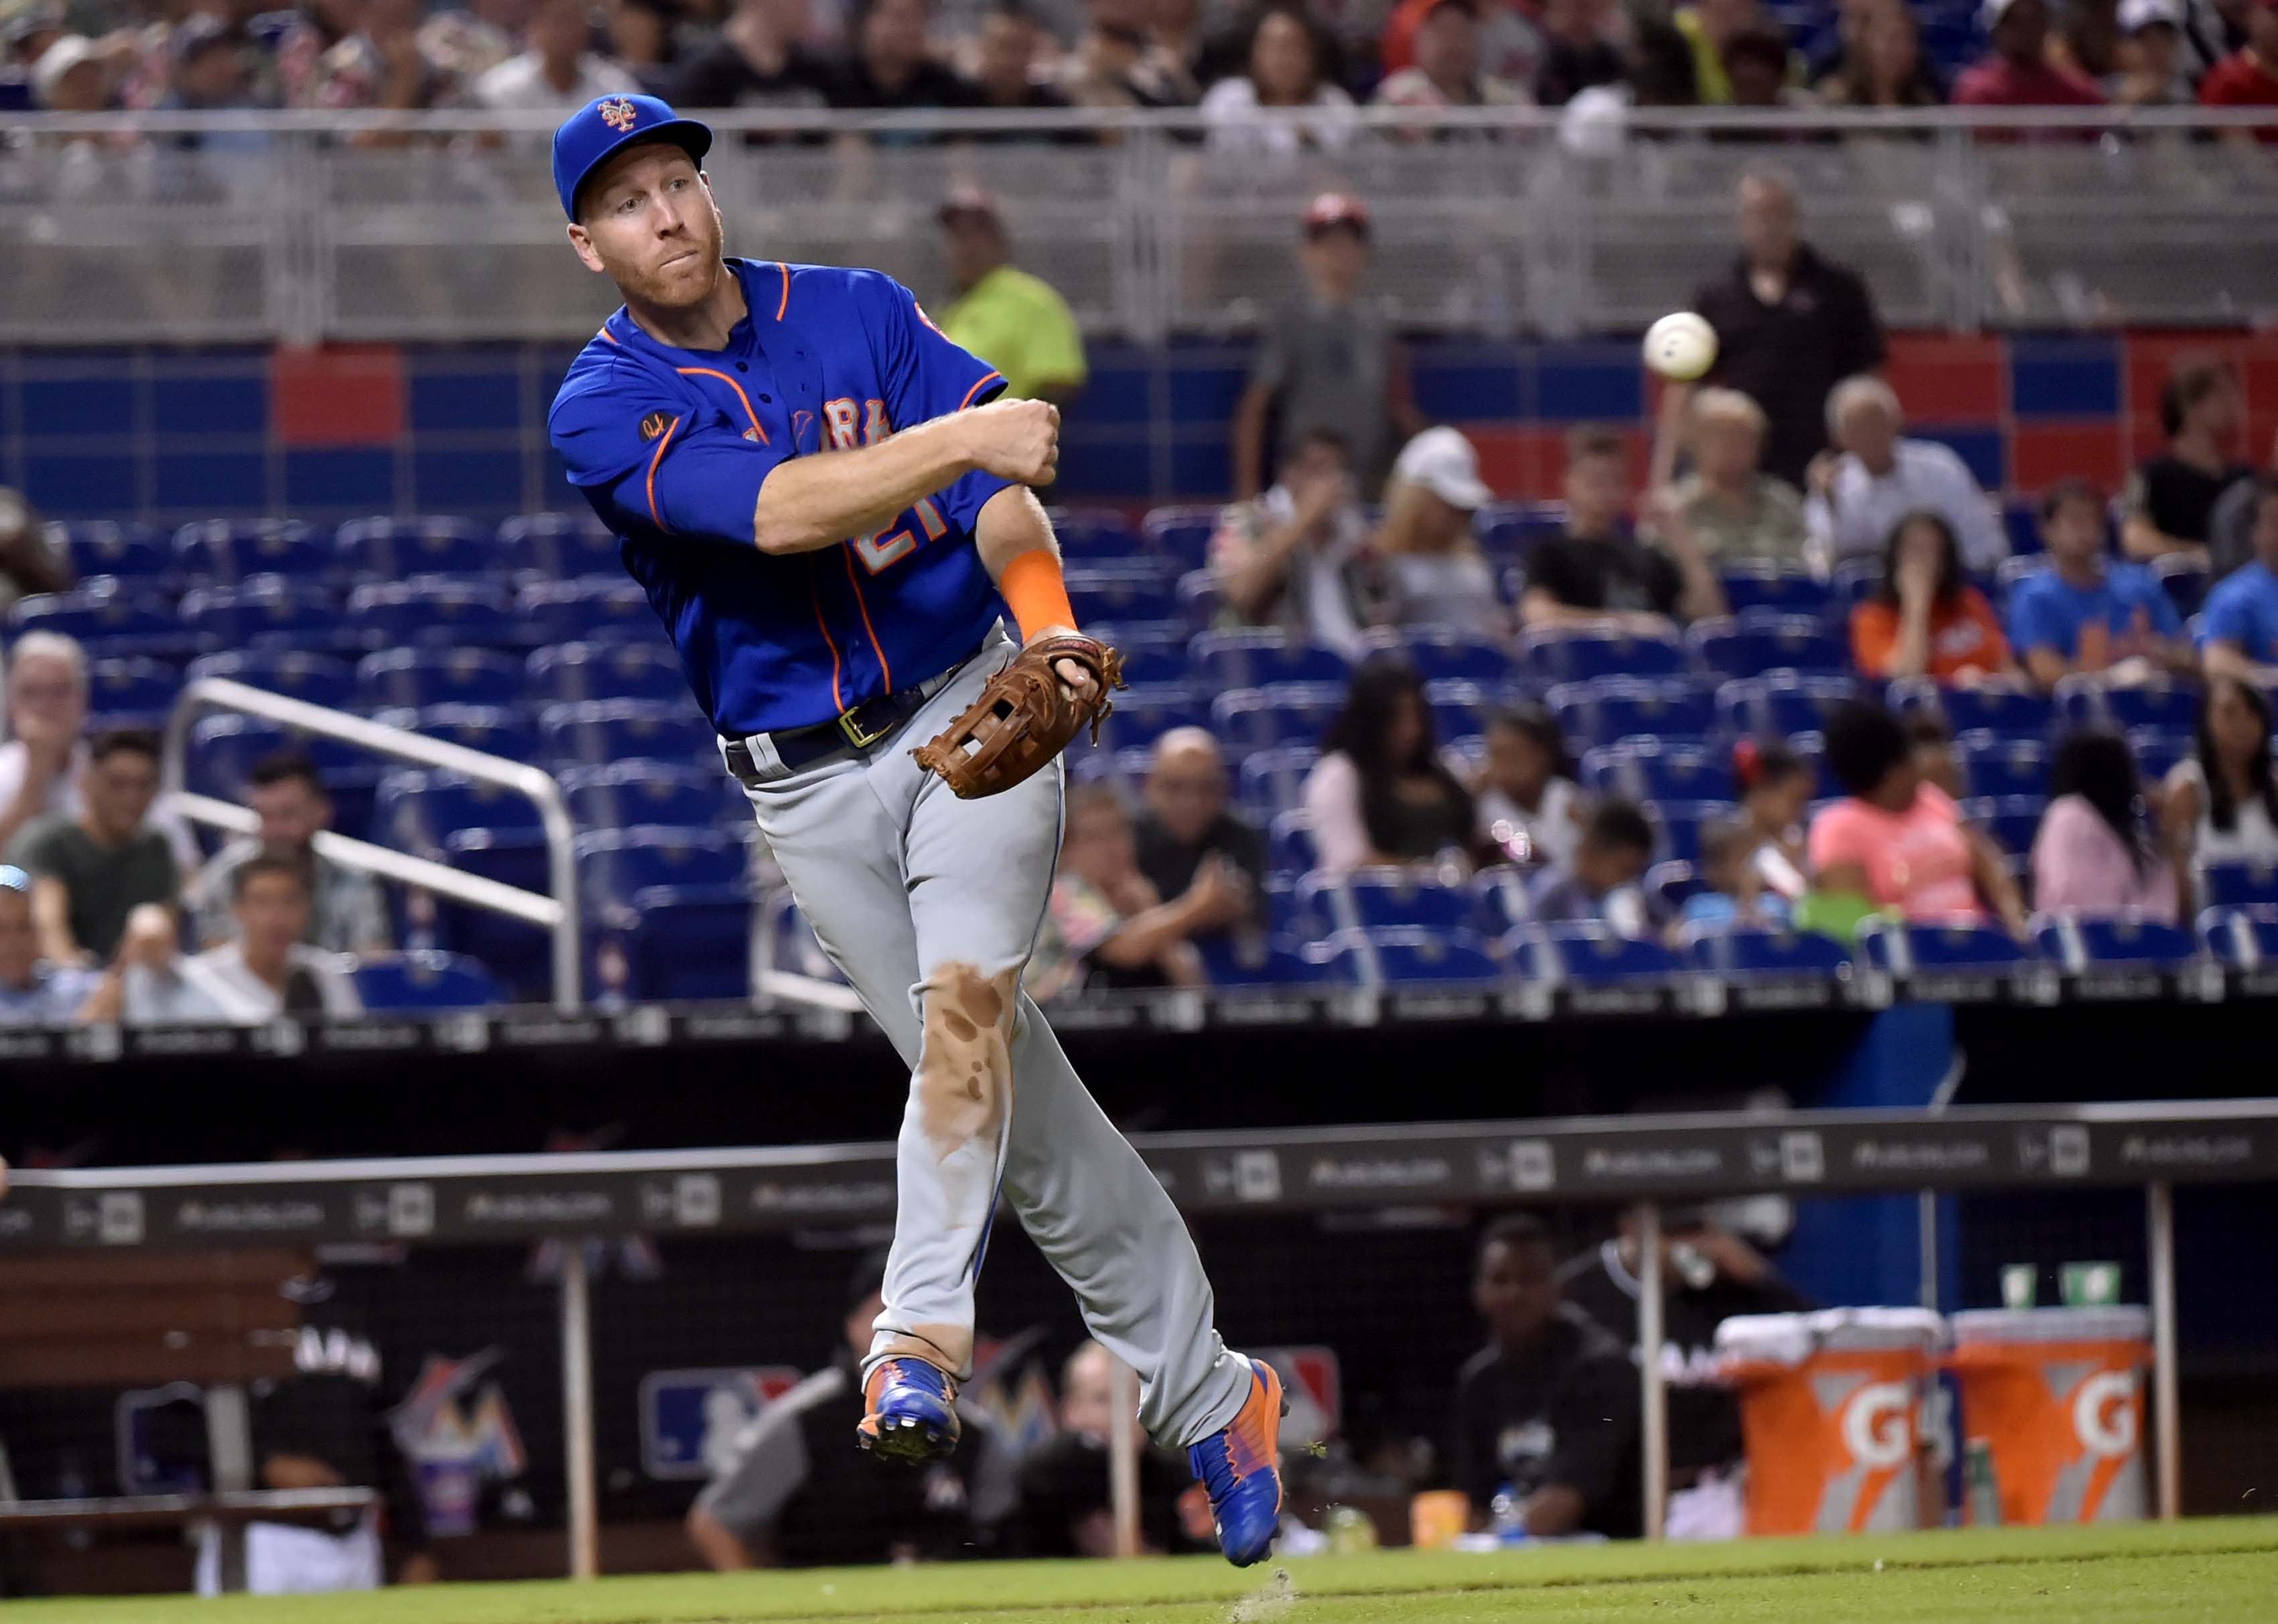 8/12/18 Game Preview: New York Mets at Miami Marlins